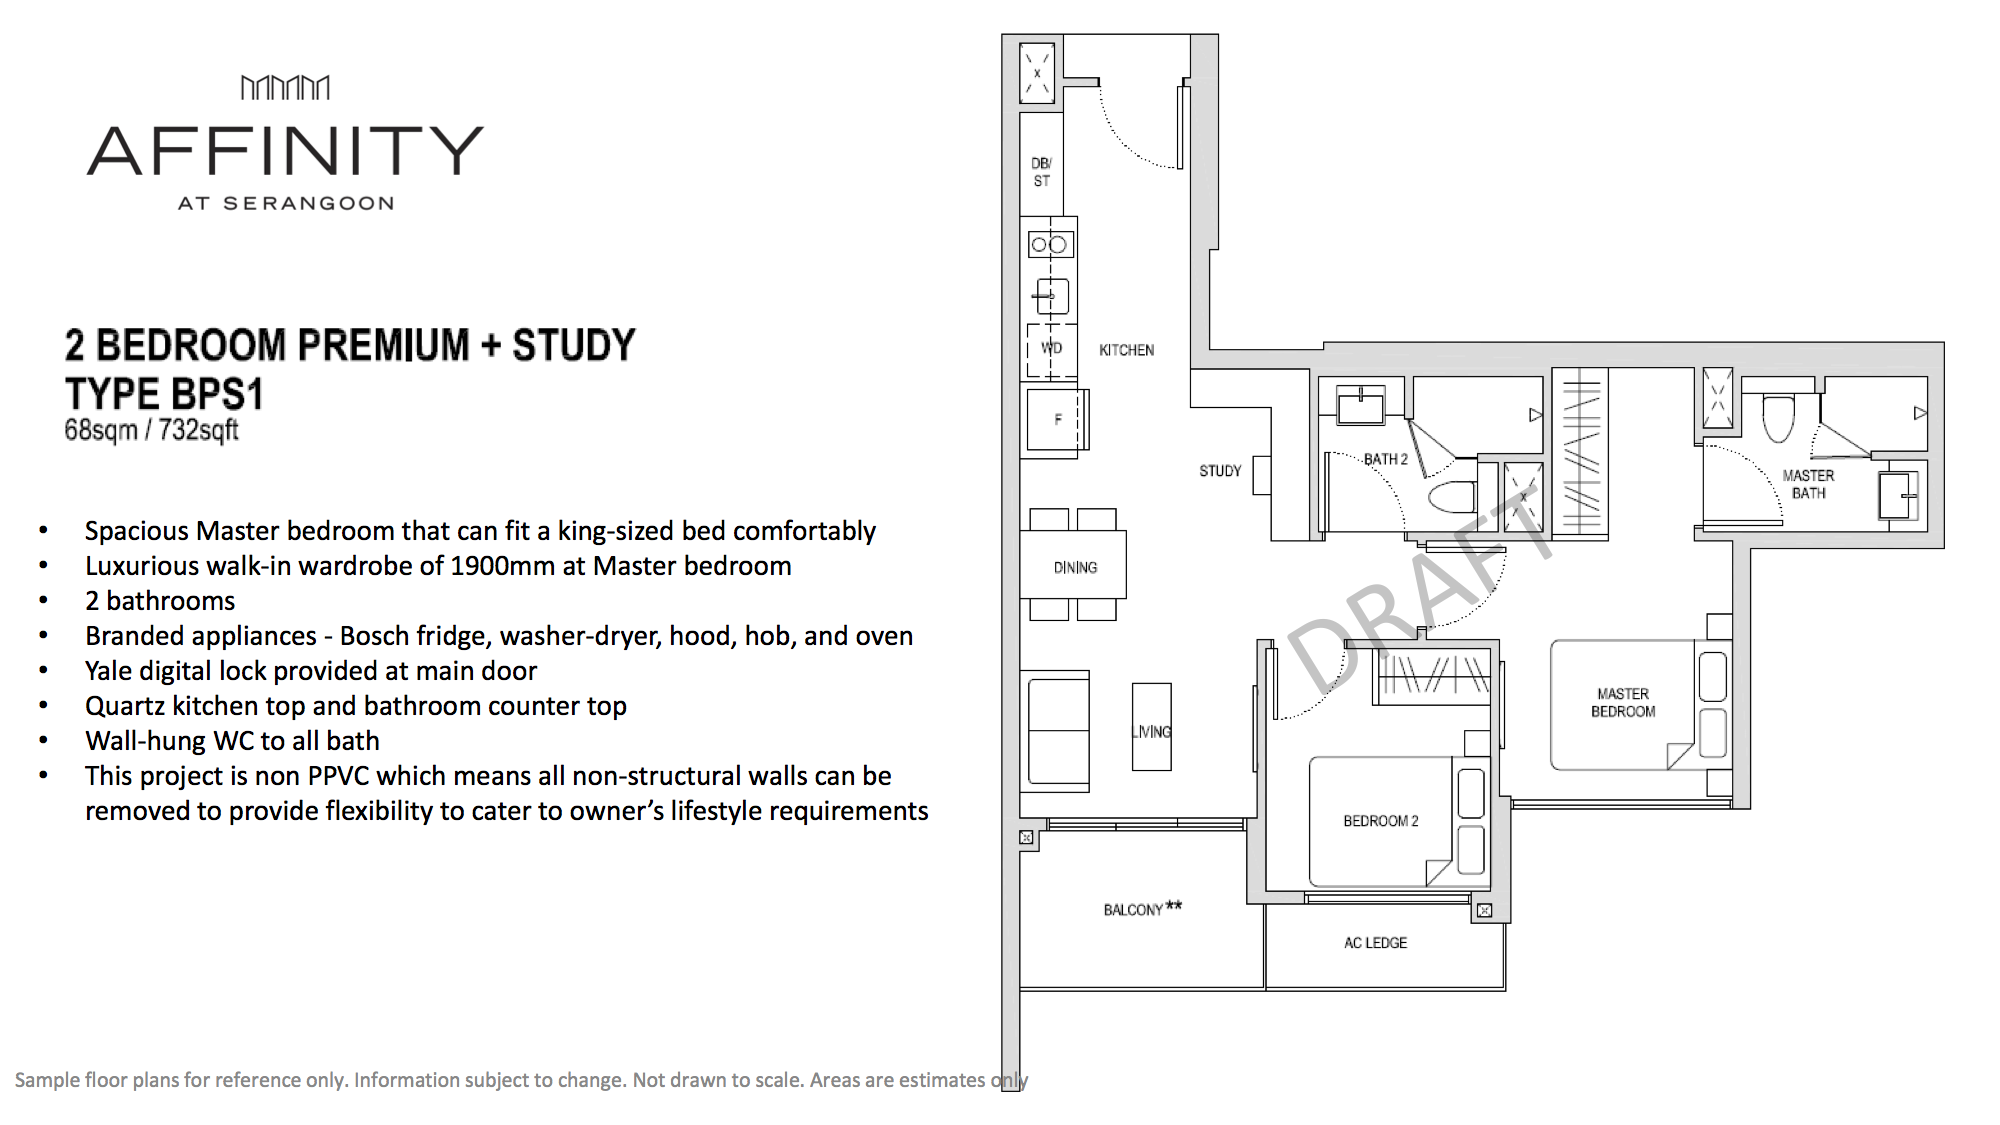 Affinity At Serangoon Floor Plan 2 Bedroom Premium Study